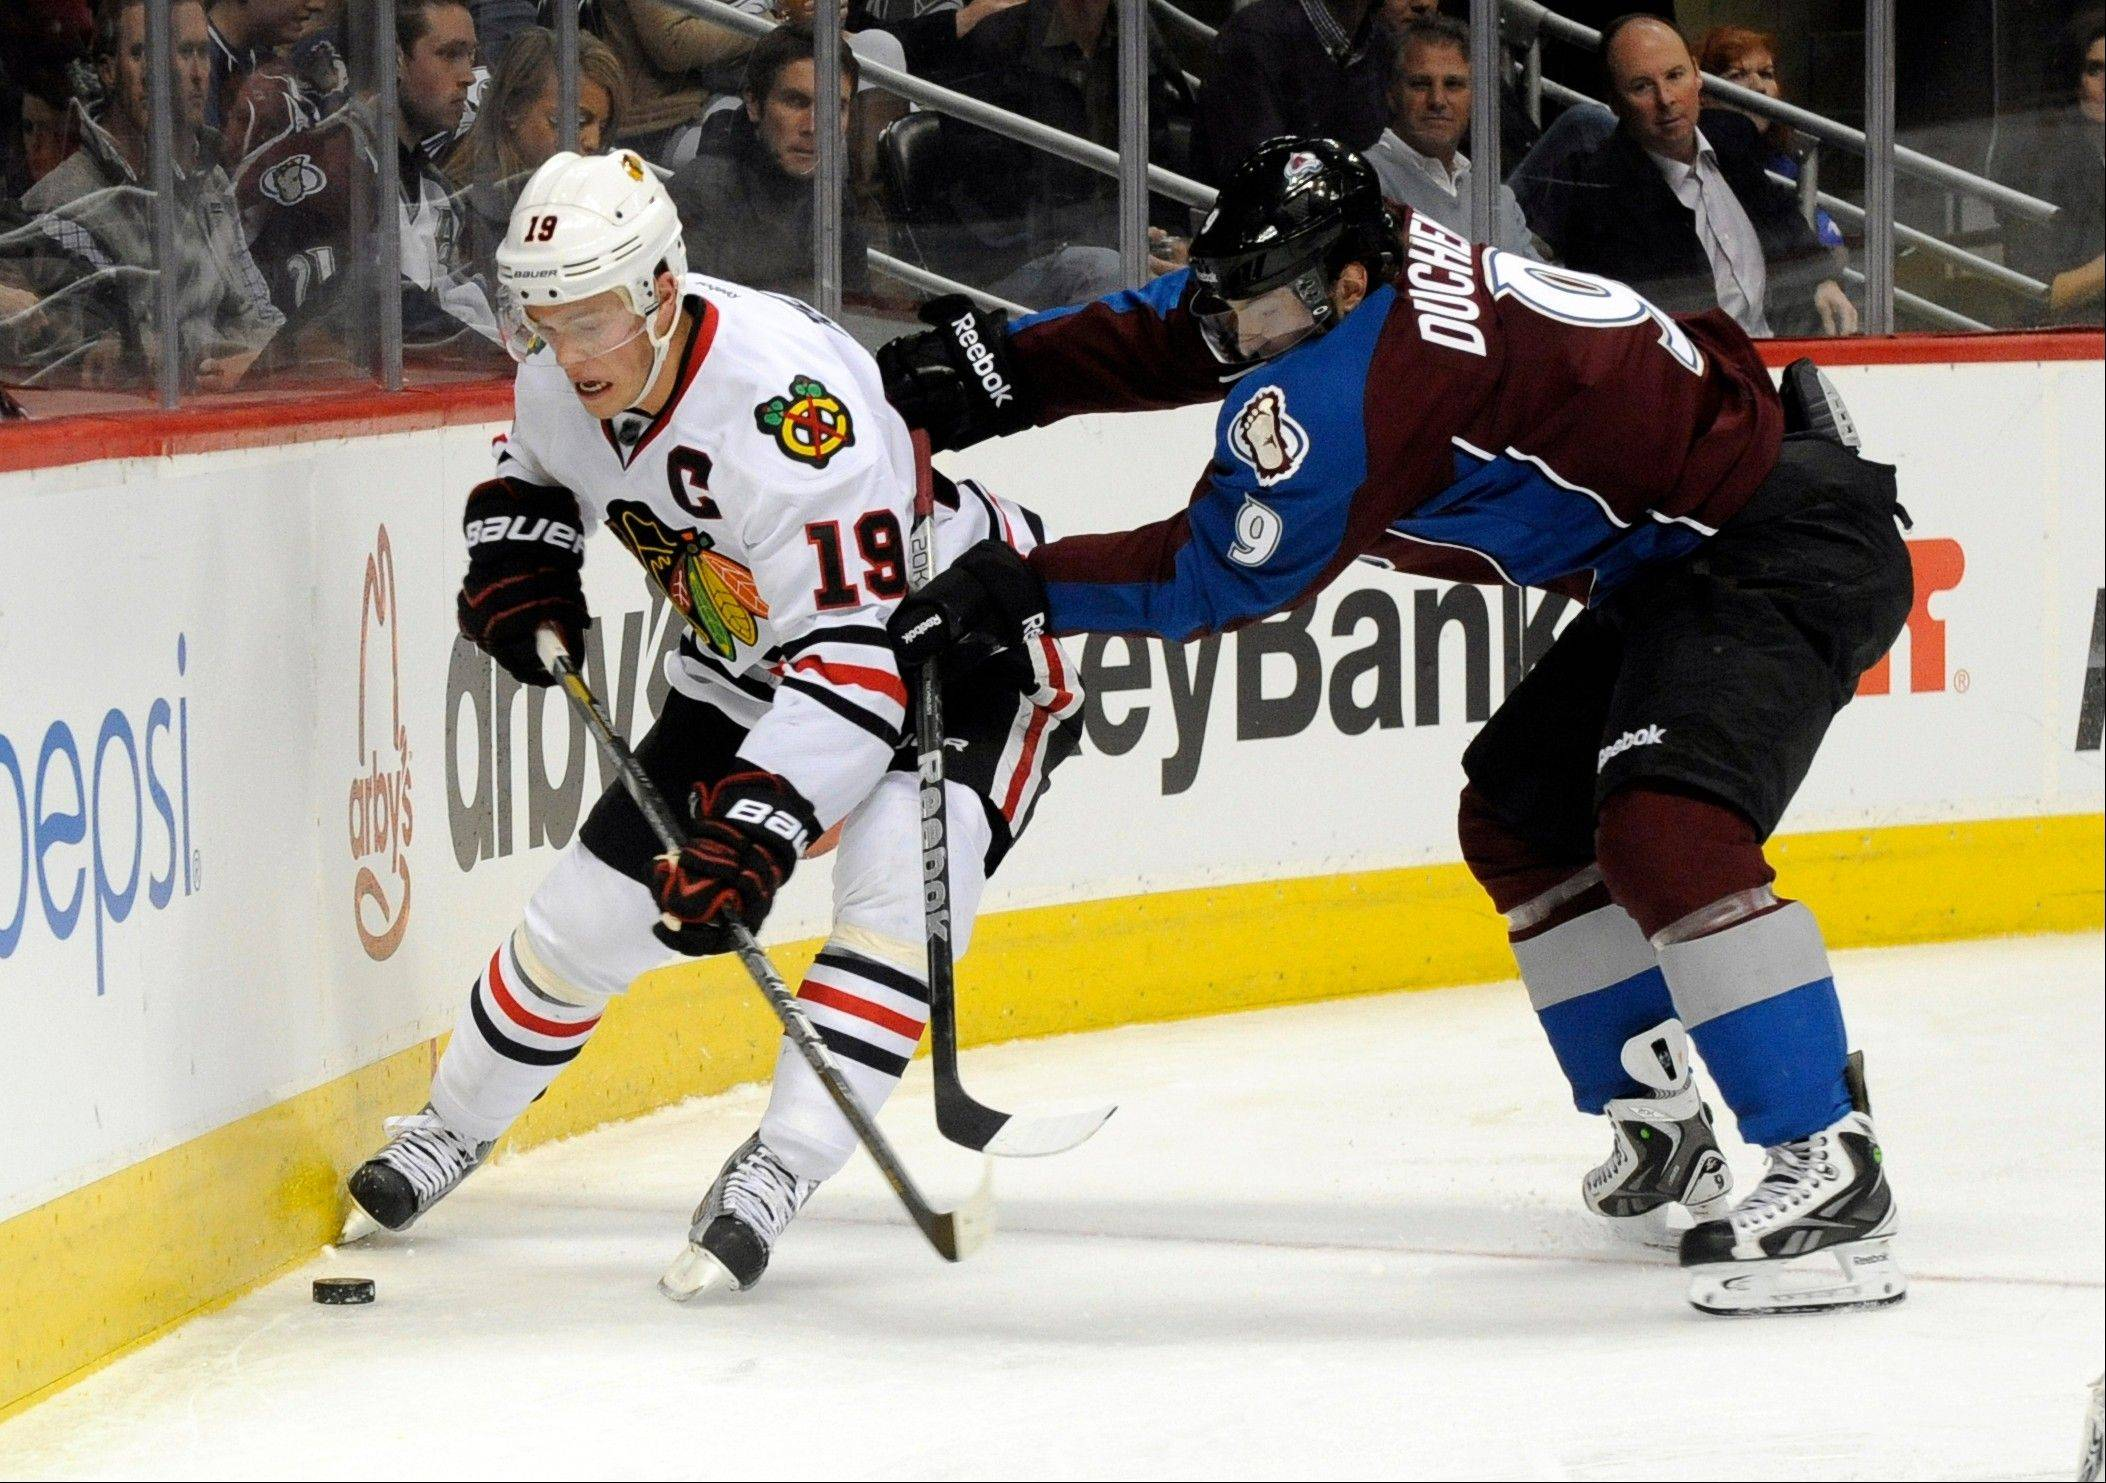 Colorado Avalanche center Matt Duchene (9) and Chicago Blackhawks center Jonathan Toews (19) fight for the puck during the second period .